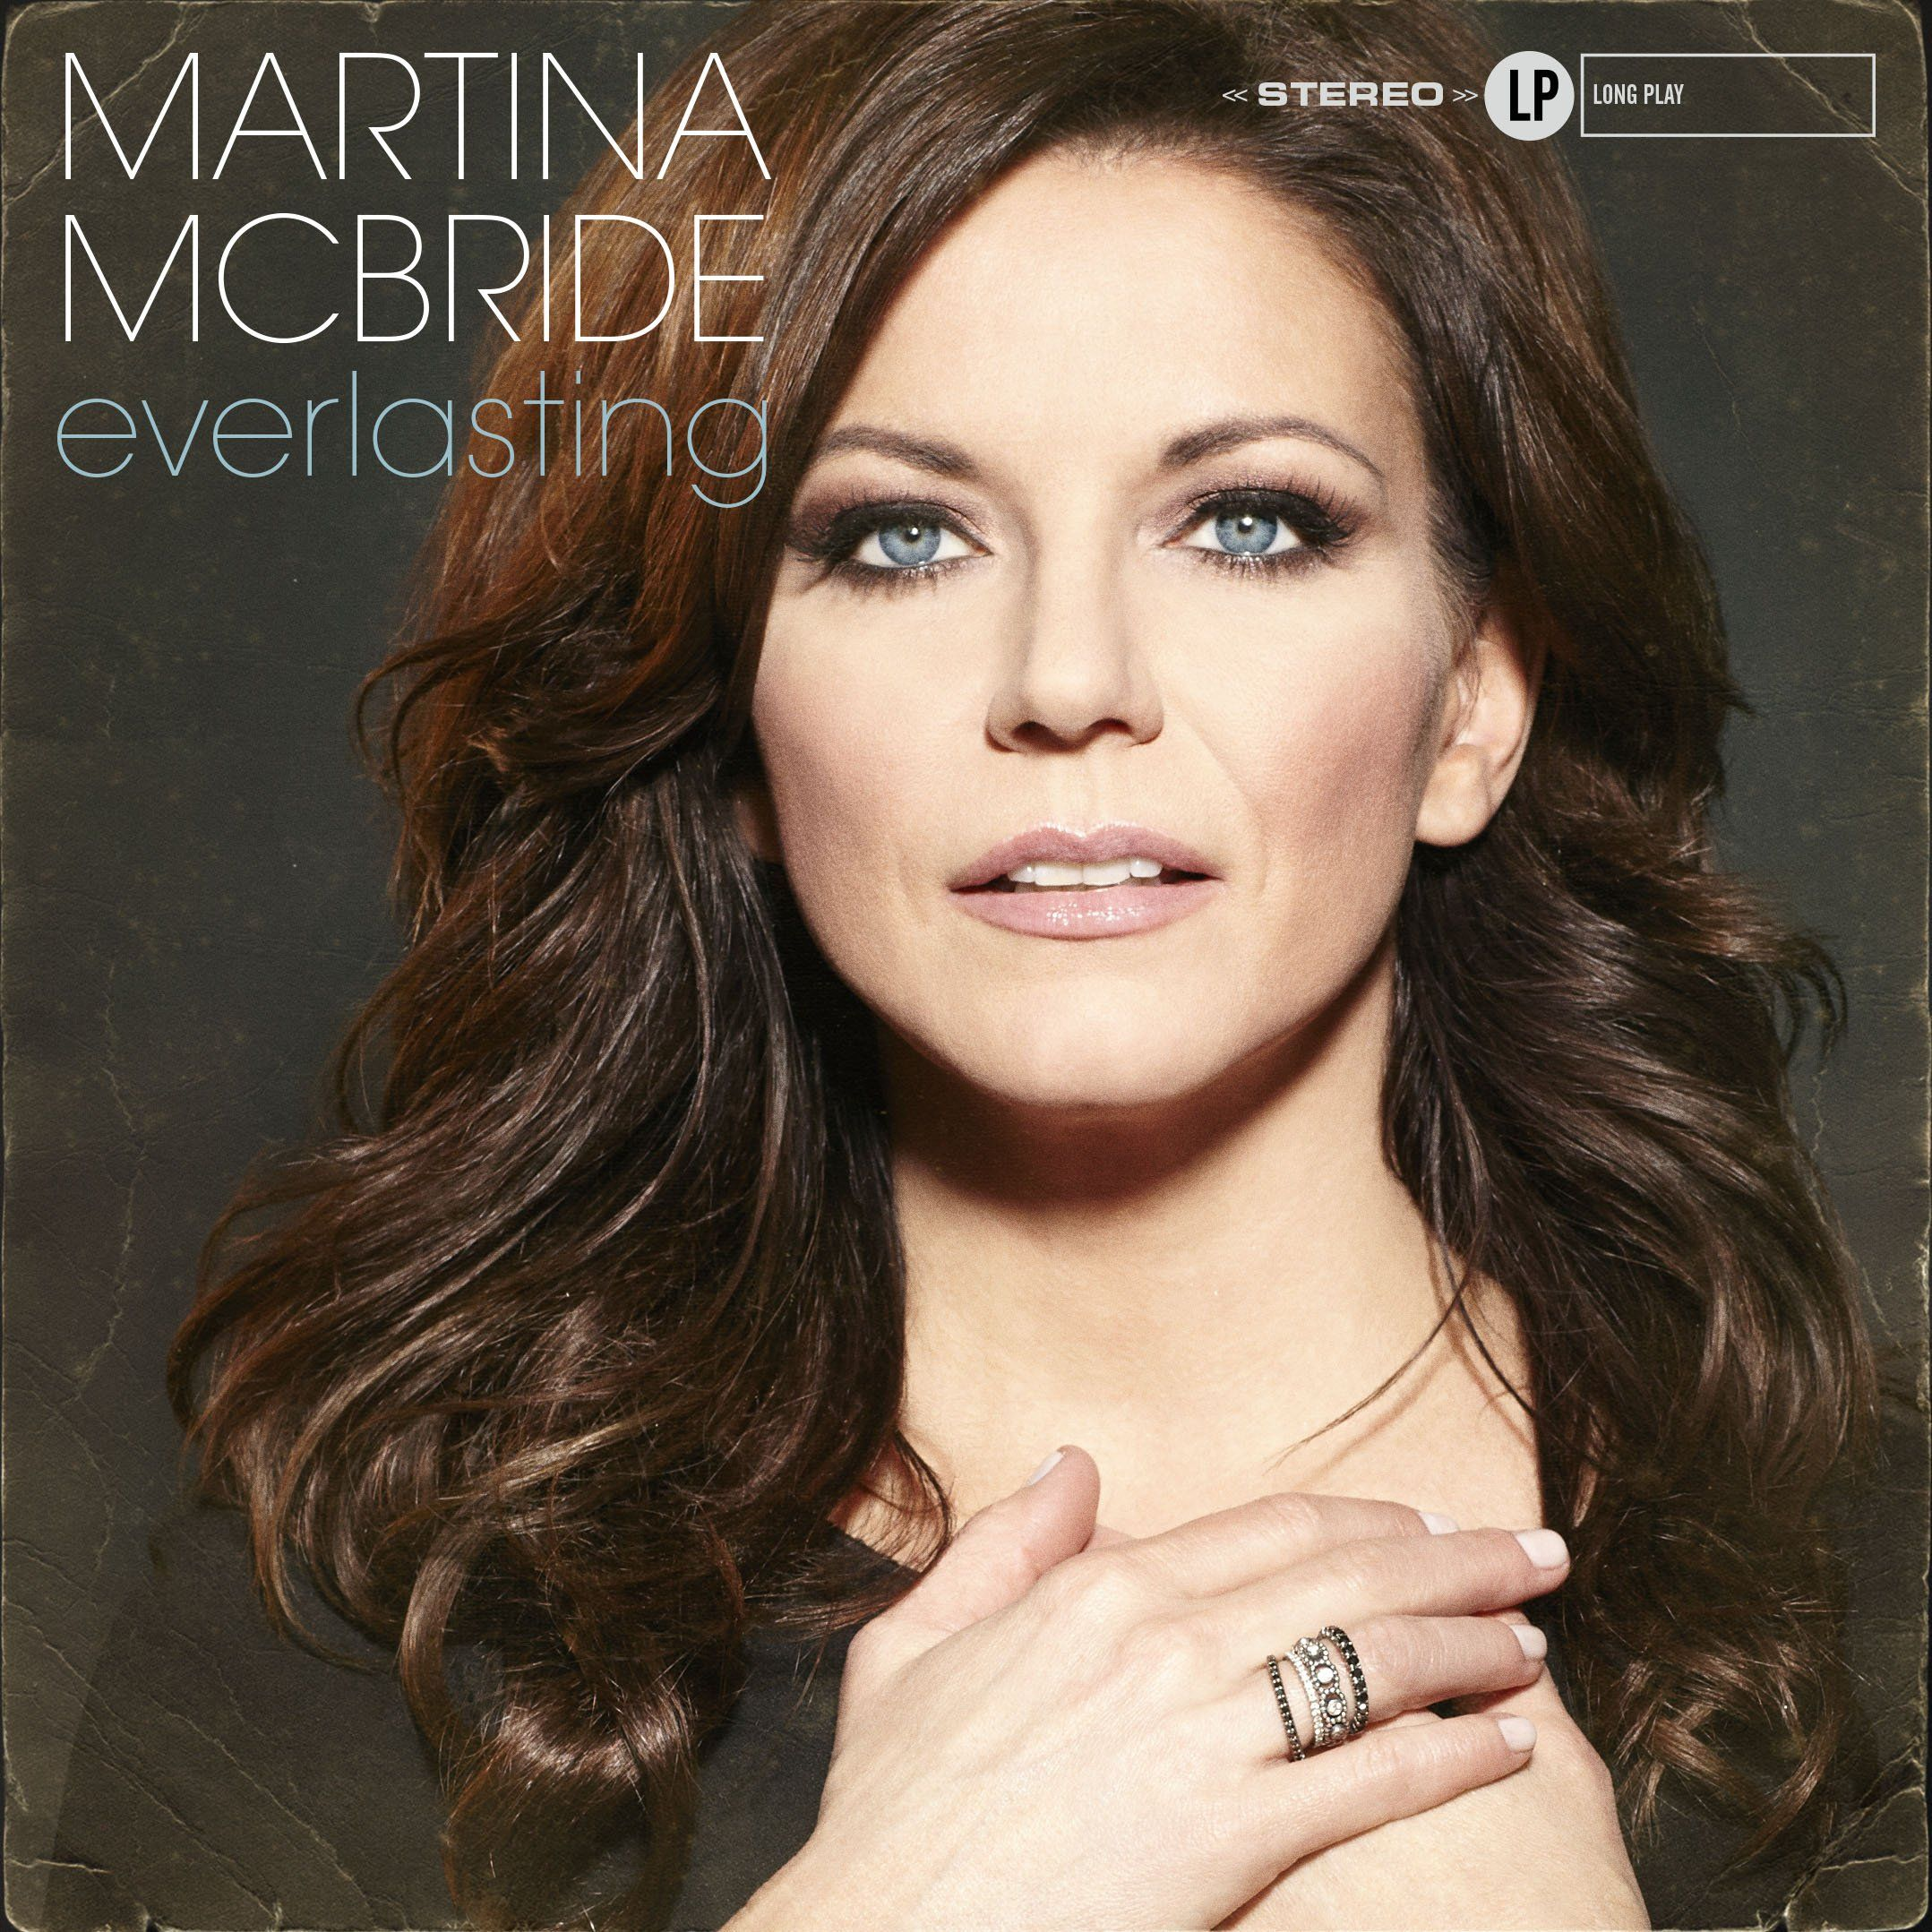 """Martina McBride - Everlasting. I noticed """"Shine"""" is one of my top listened albums in the 2010s, although I completely forgot that. May check some new stuff from Martina."""